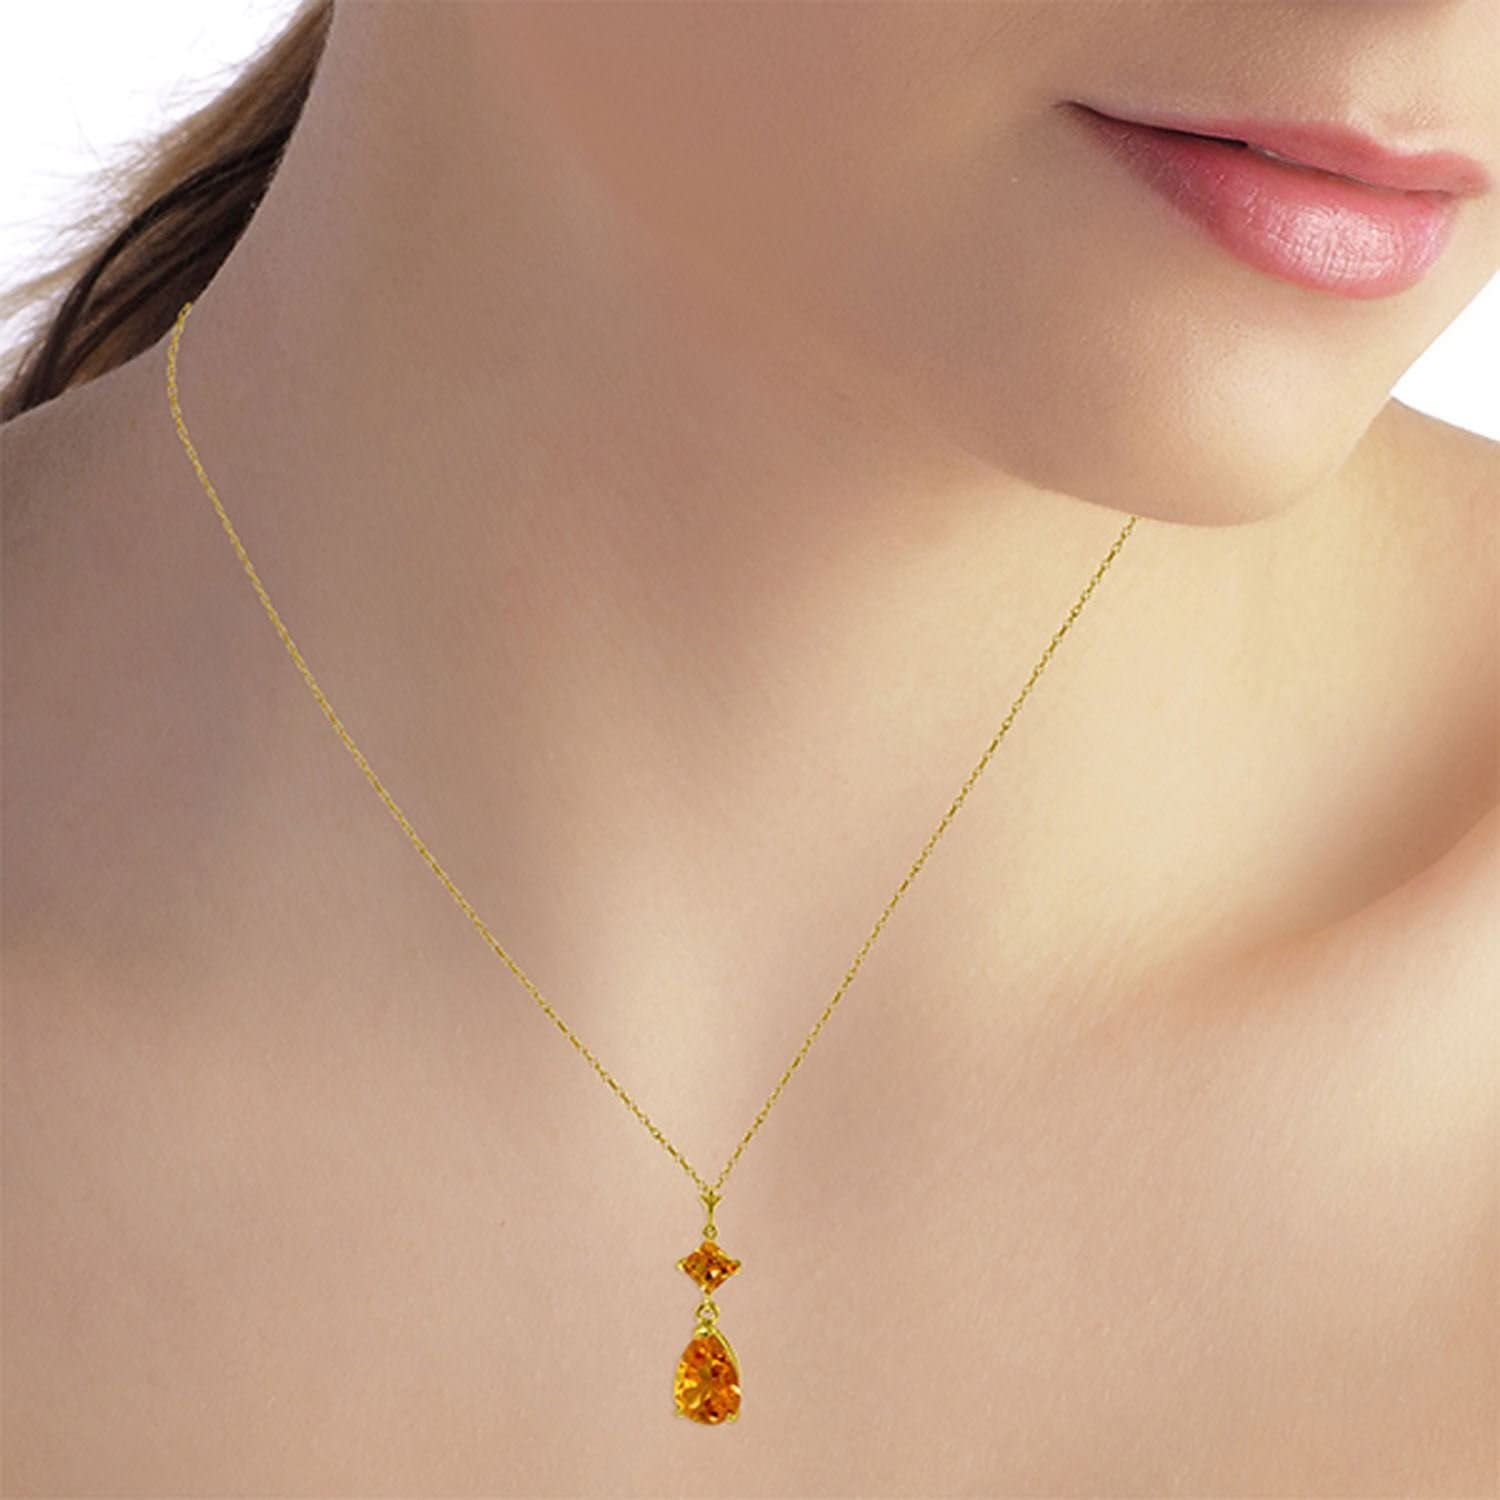 ALARRI 2 Carat 14K Solid Gold Dance Me Citrine Necklace with 22 Inch Chain Length